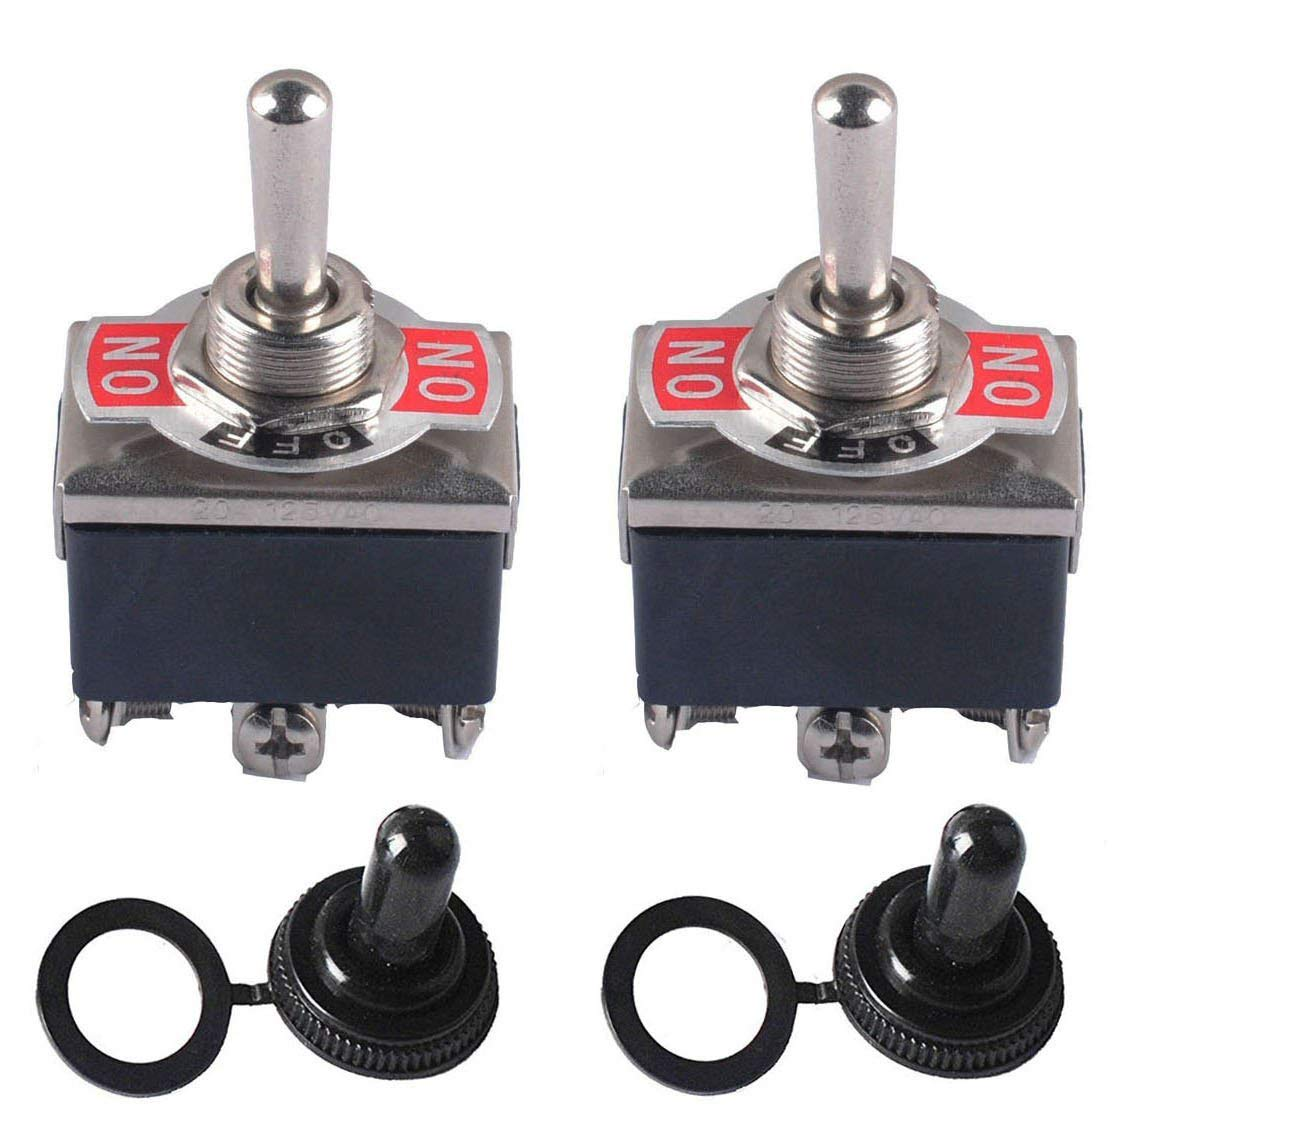 Podoy Heavy Duty Toggle Switch On-Off-On DPDT 6 Pin 15A 250VAC / 20A 125VAC with Waterproof Boot Cover (2 Set)